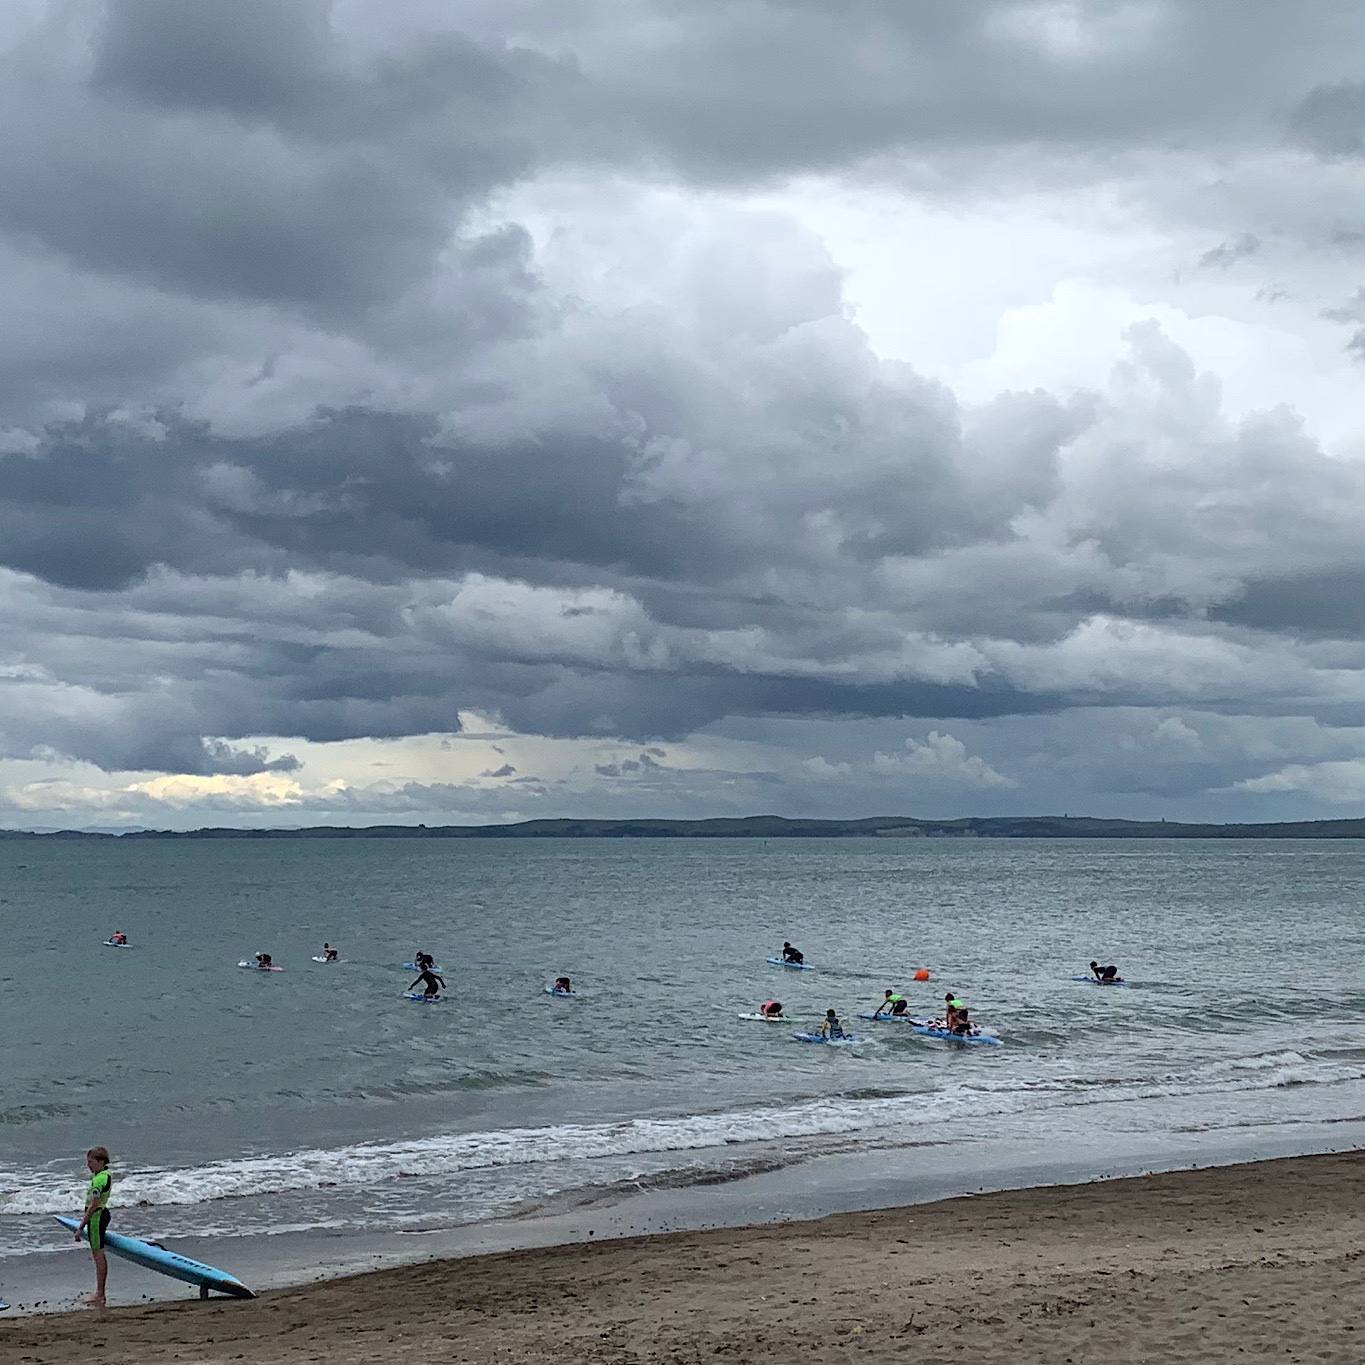 Kids taking out surf boards in one of the many bays along the North Shore. Storm clouds make no difference since it rains nearly every day.